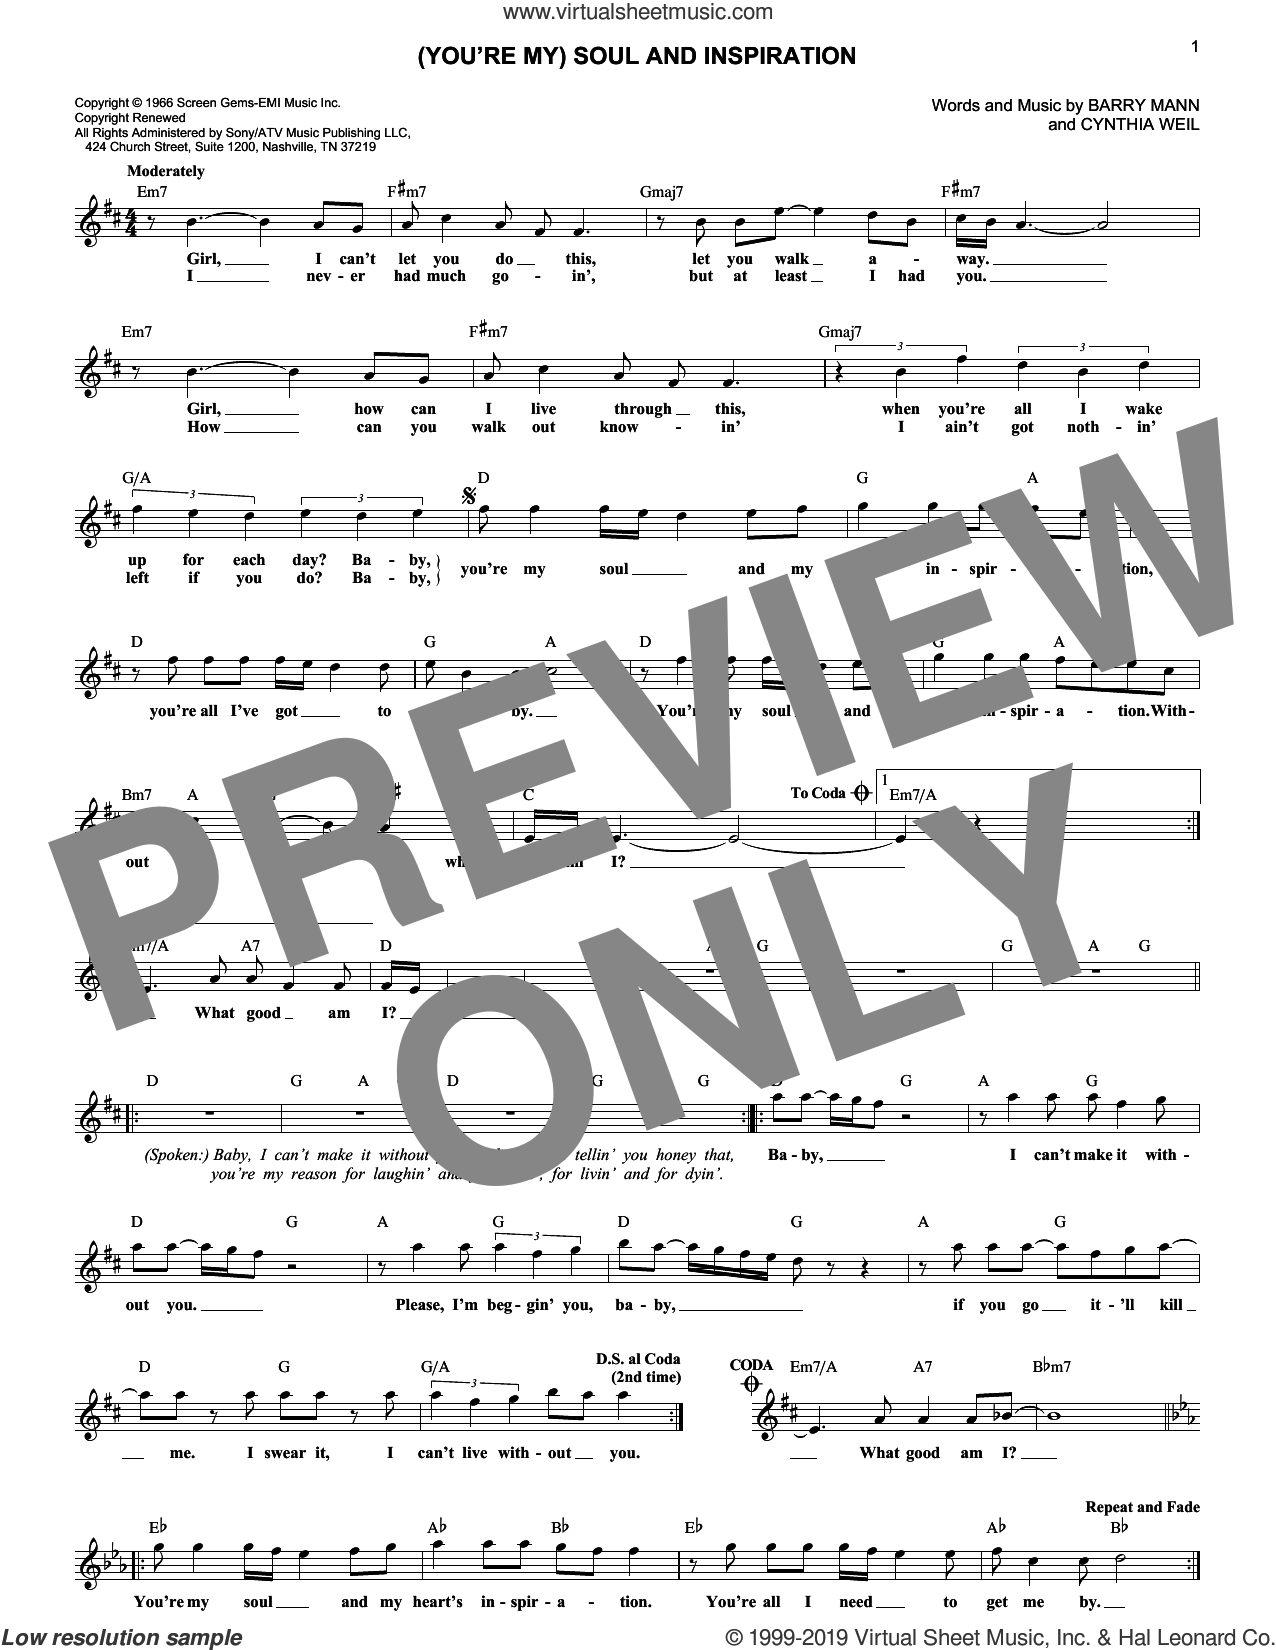 (You're My) Soul And Inspiration sheet music for voice and other instruments (fake book) by Righteous Brothers, Barry Mann and Cynthia Weil, intermediate skill level